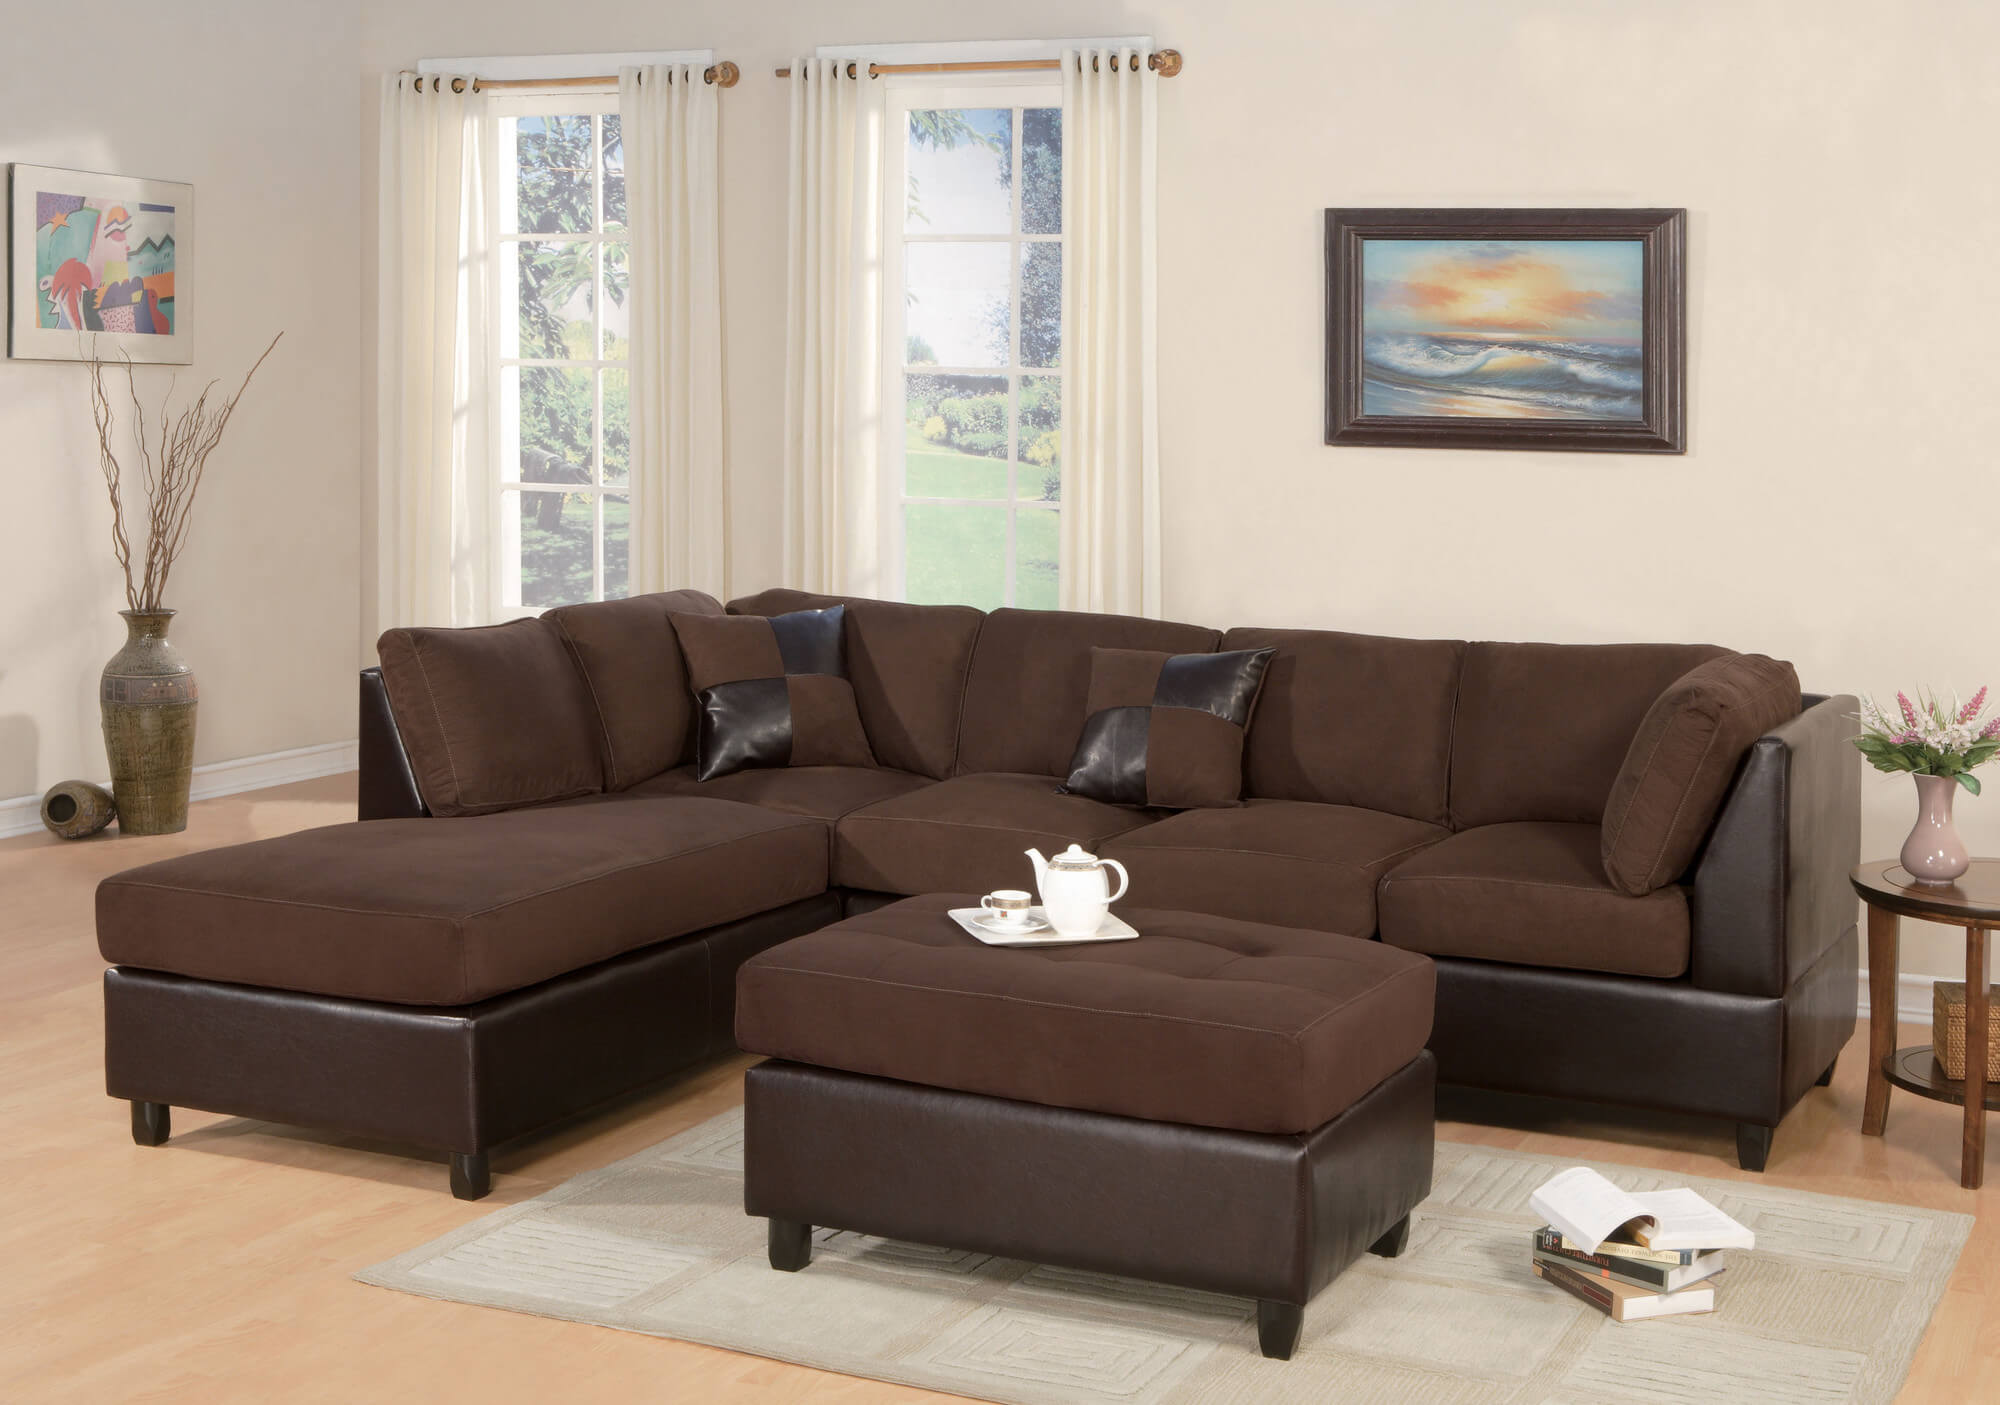 Are Bonded Leather Couches Durable